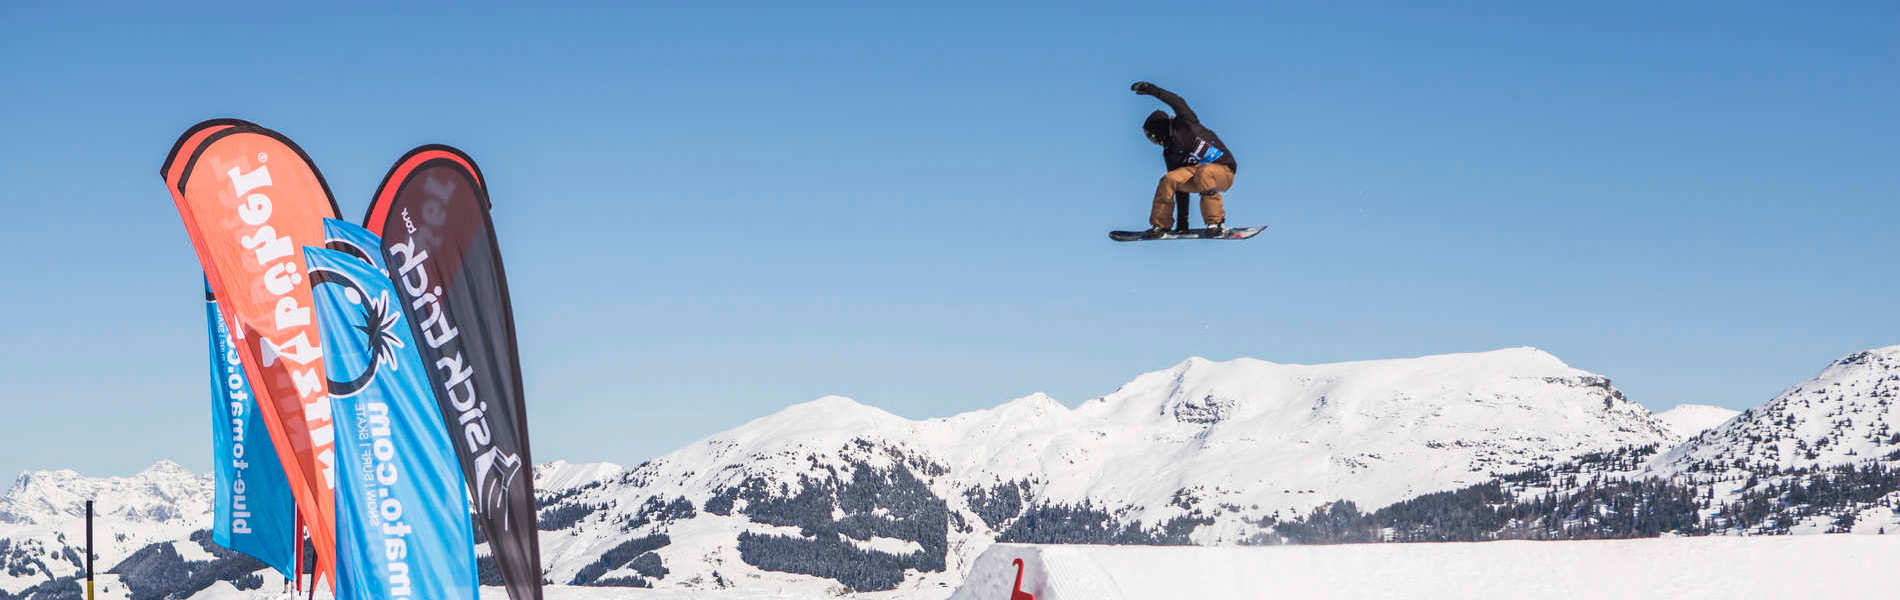 Ready for Shred-mas at Snowpark Kitzbühel?